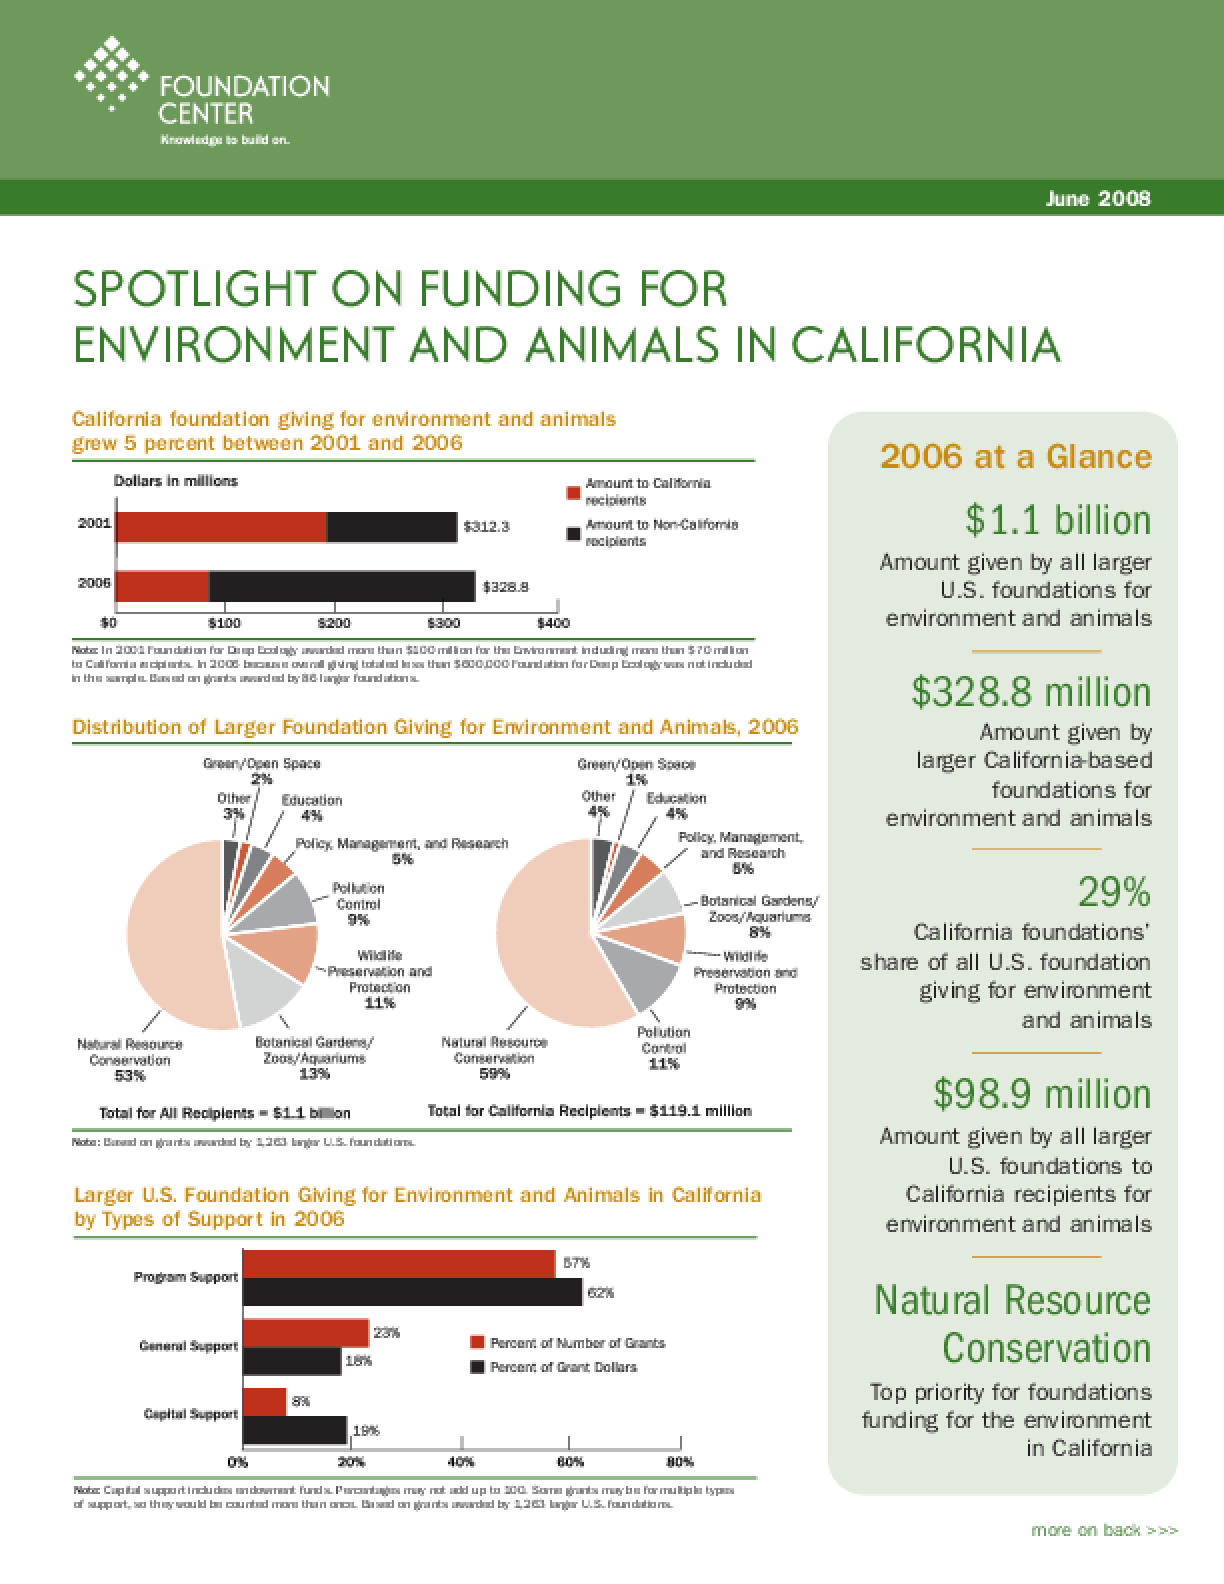 Spotlight on Funding for the Environment and Animals in California